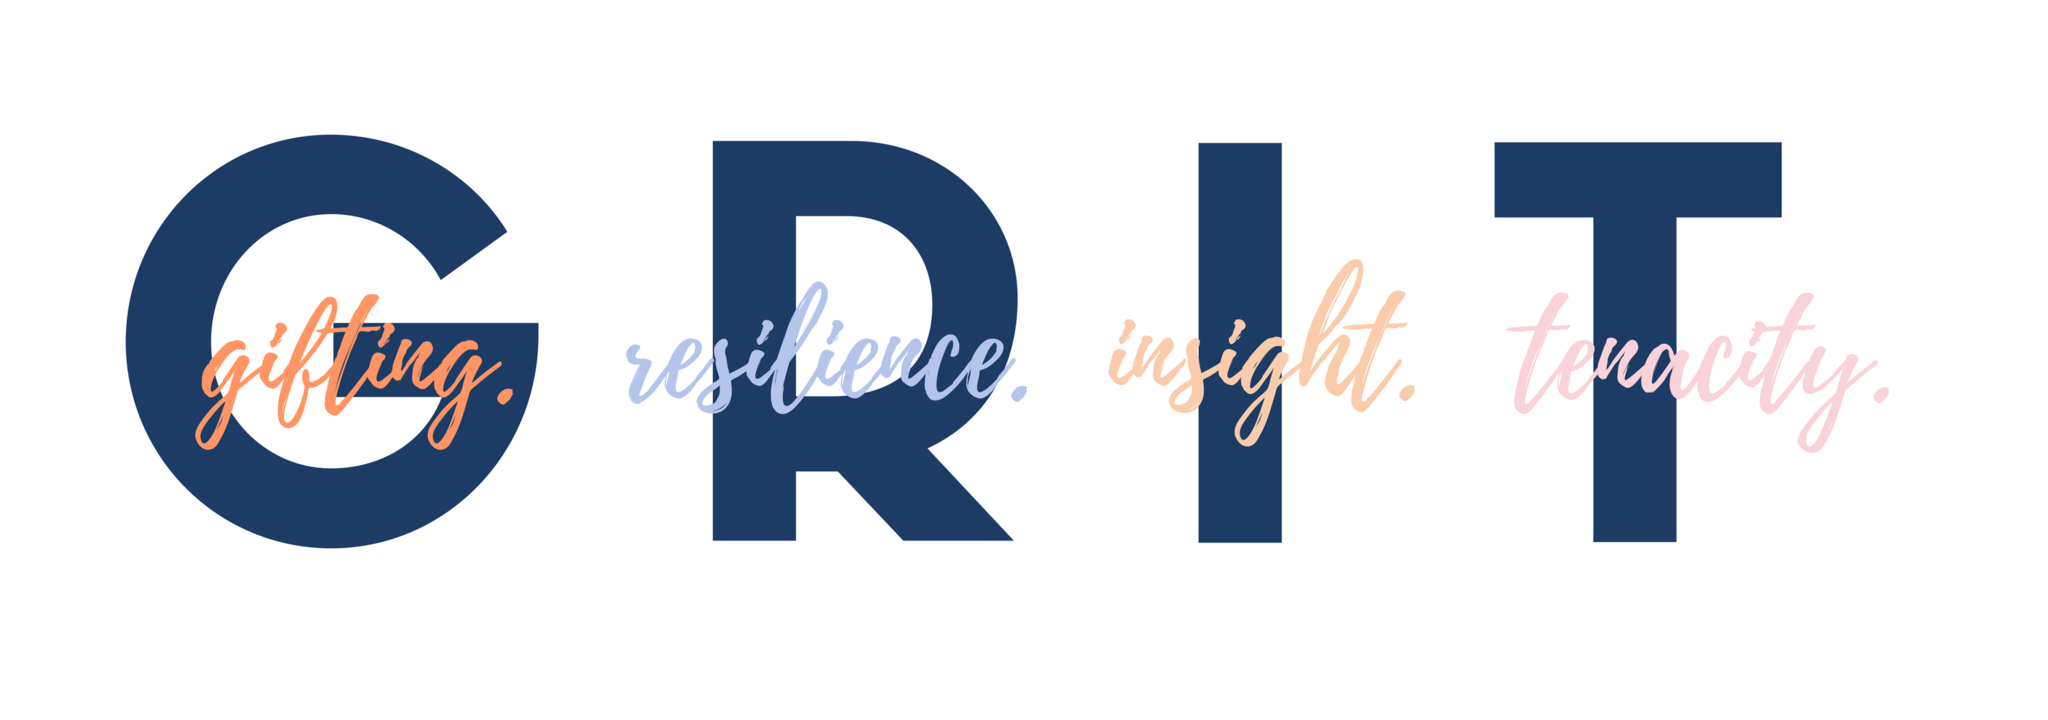 GRIT: Gifting, Resilience, Insight, Tenacity